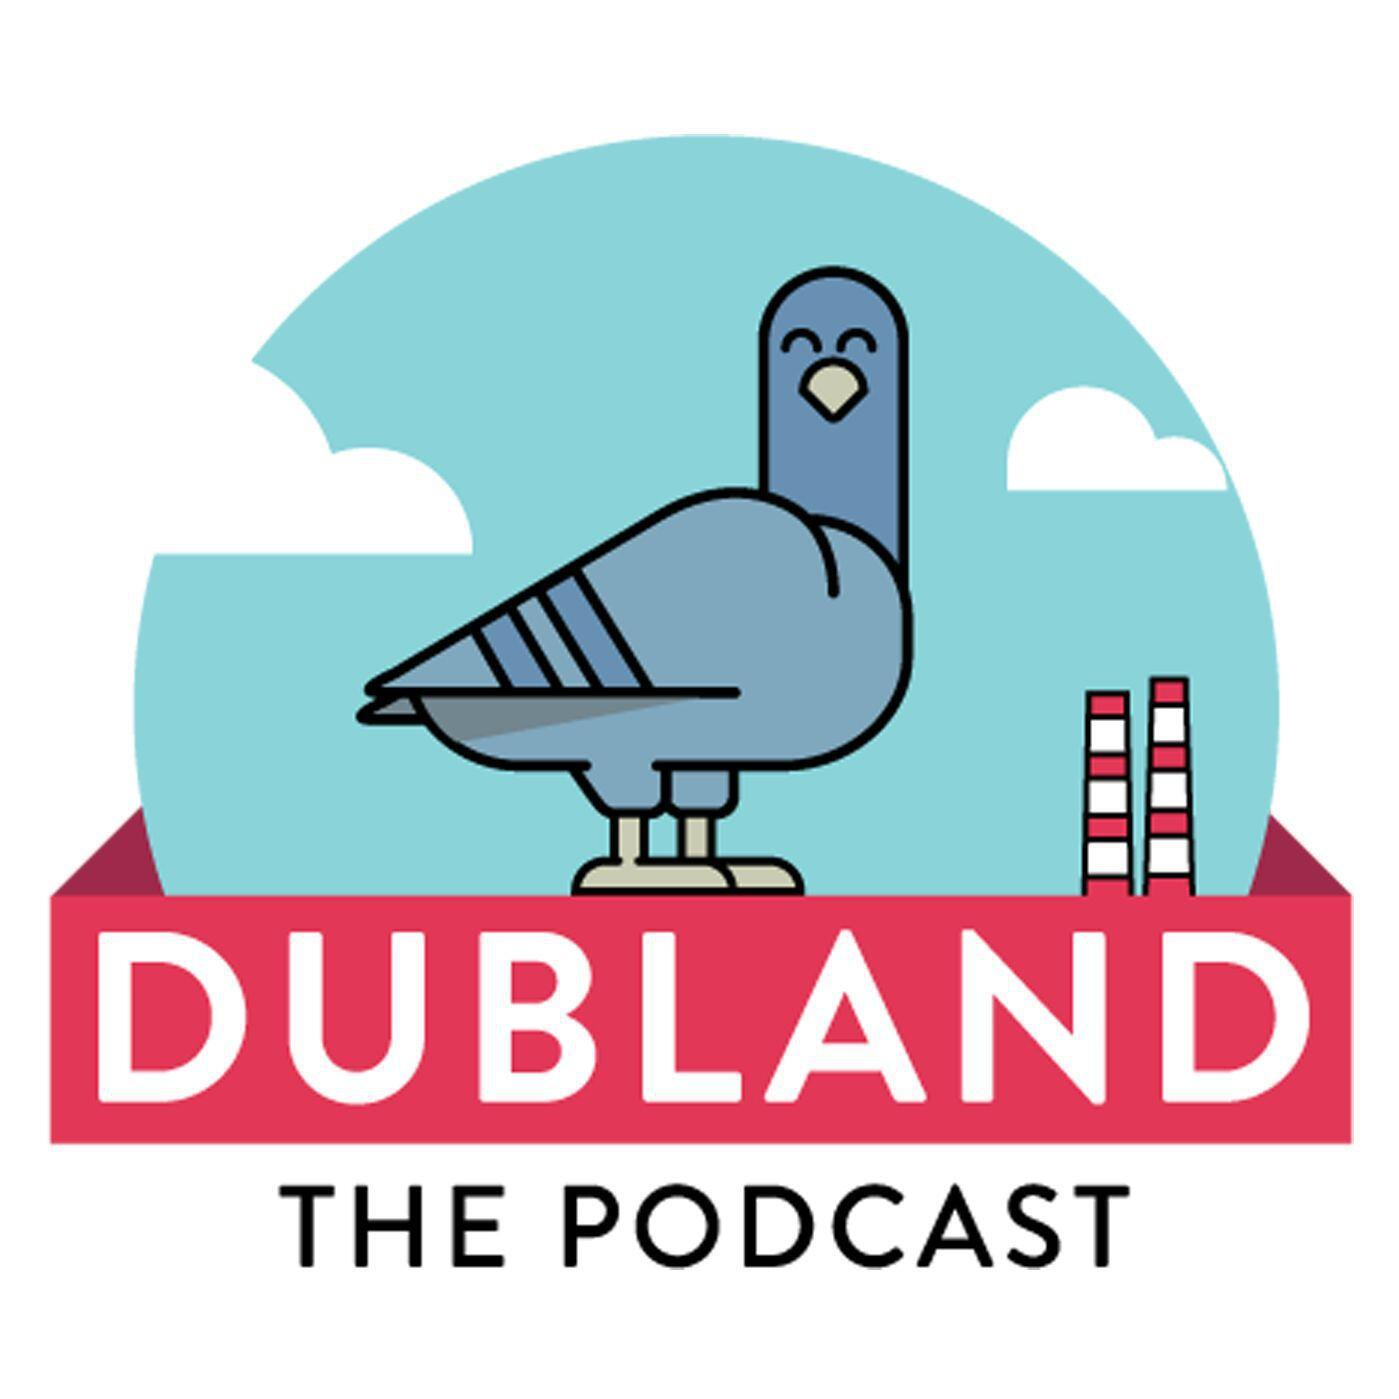 75 DUBLAND THE PODCAST